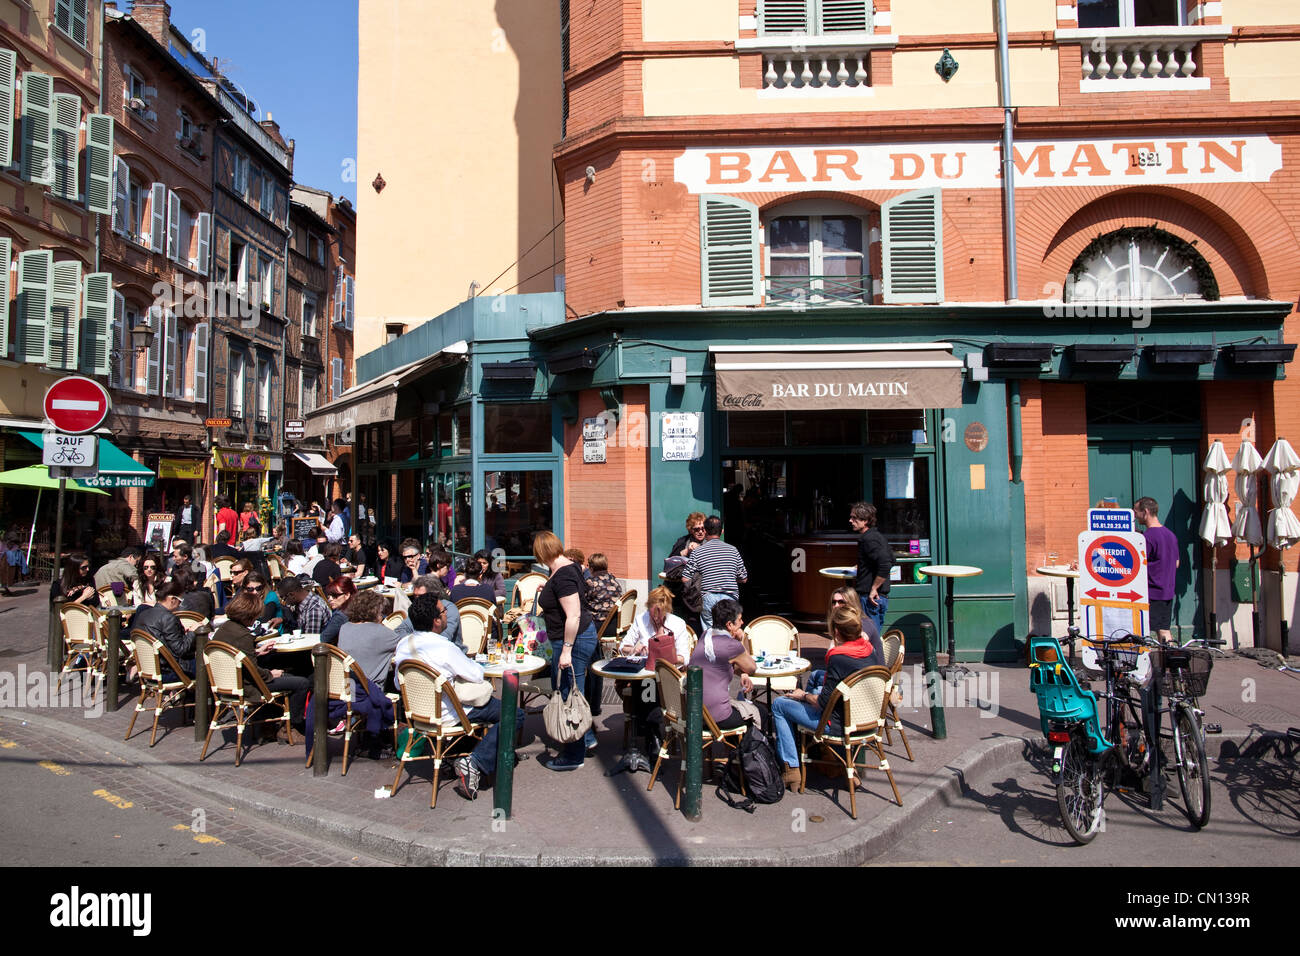 People sitting outside at Bar du Matin, Toulouse, South of France Stock Photo